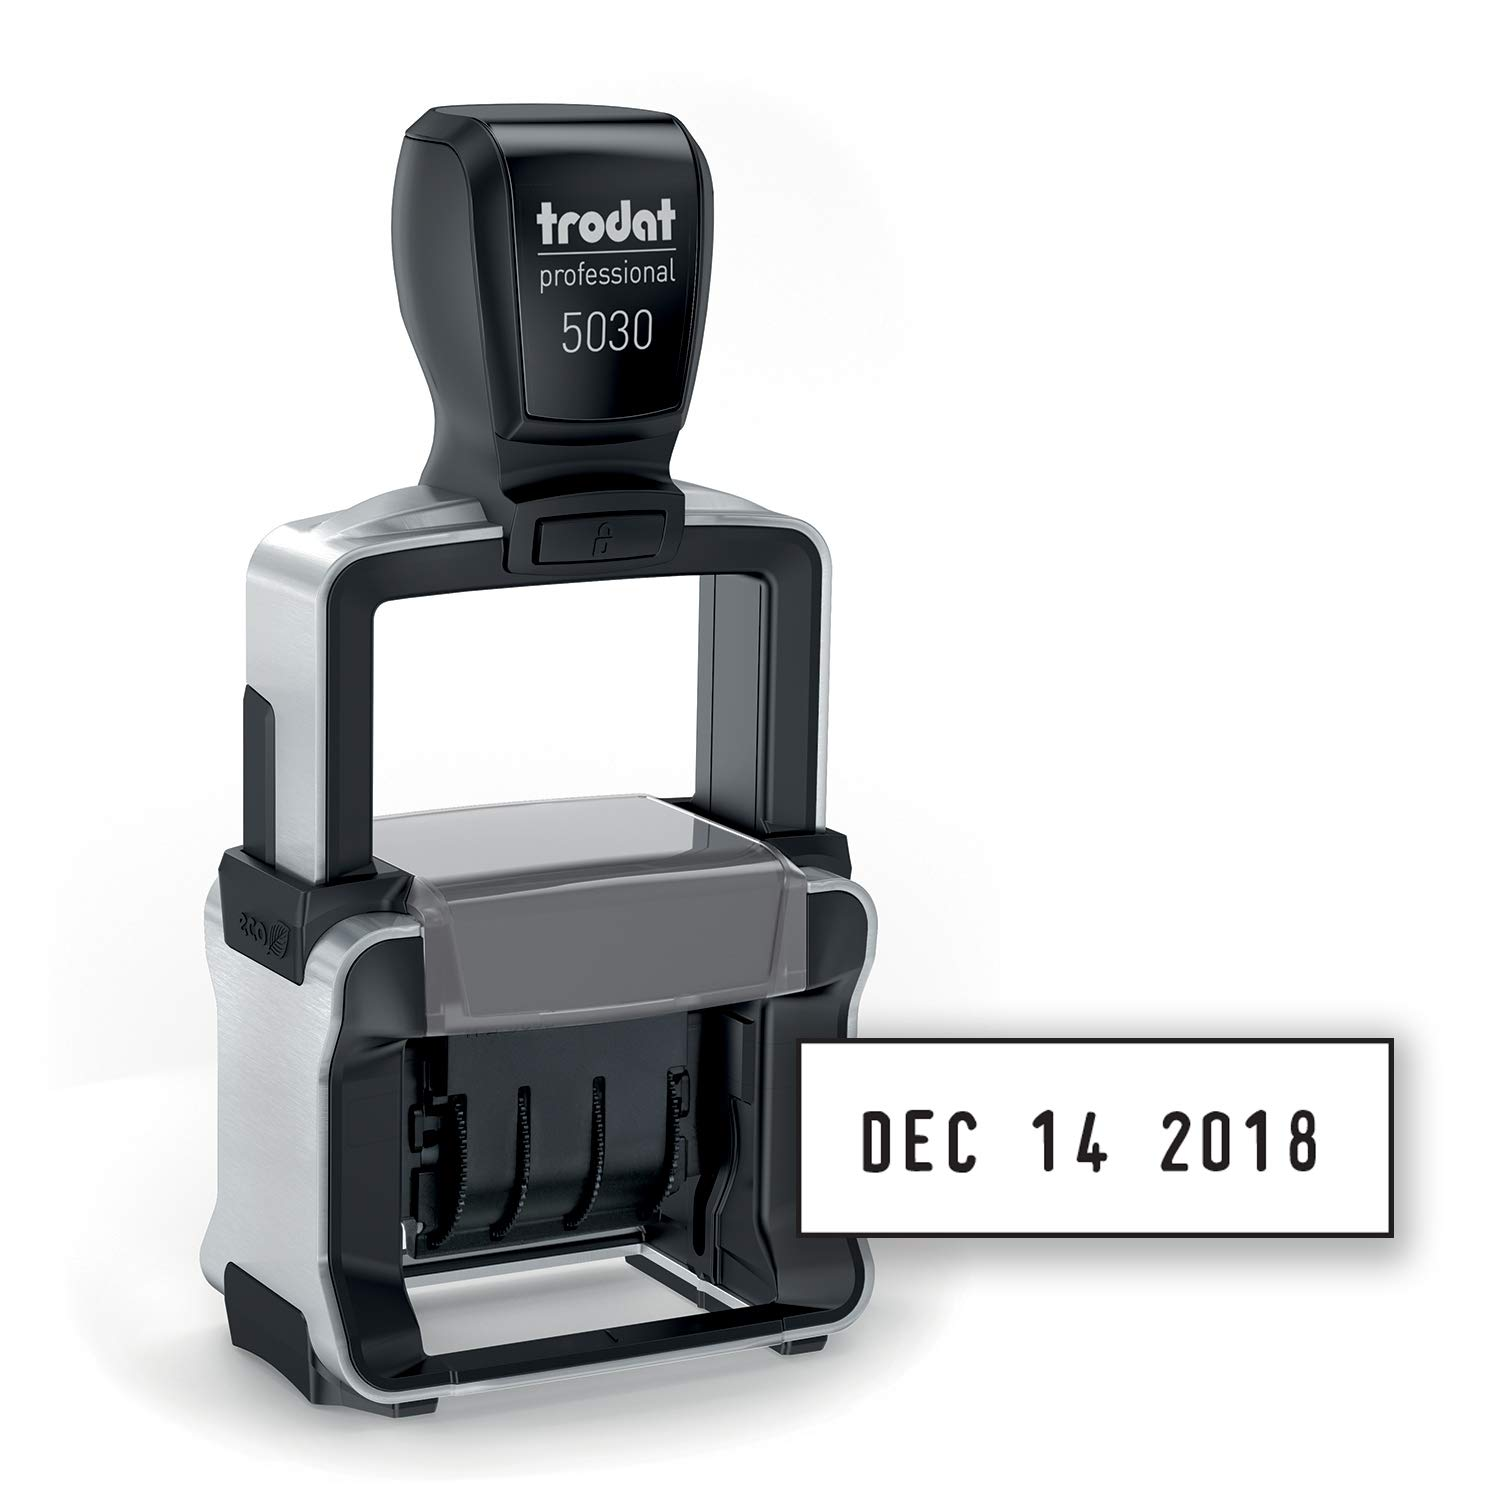 Trodat Professional 4.0 Date Stamp, Dater, Self-Inking, Impression Size: 1 5/8 x 3/8 Inches, Black (T5030) by Trodat